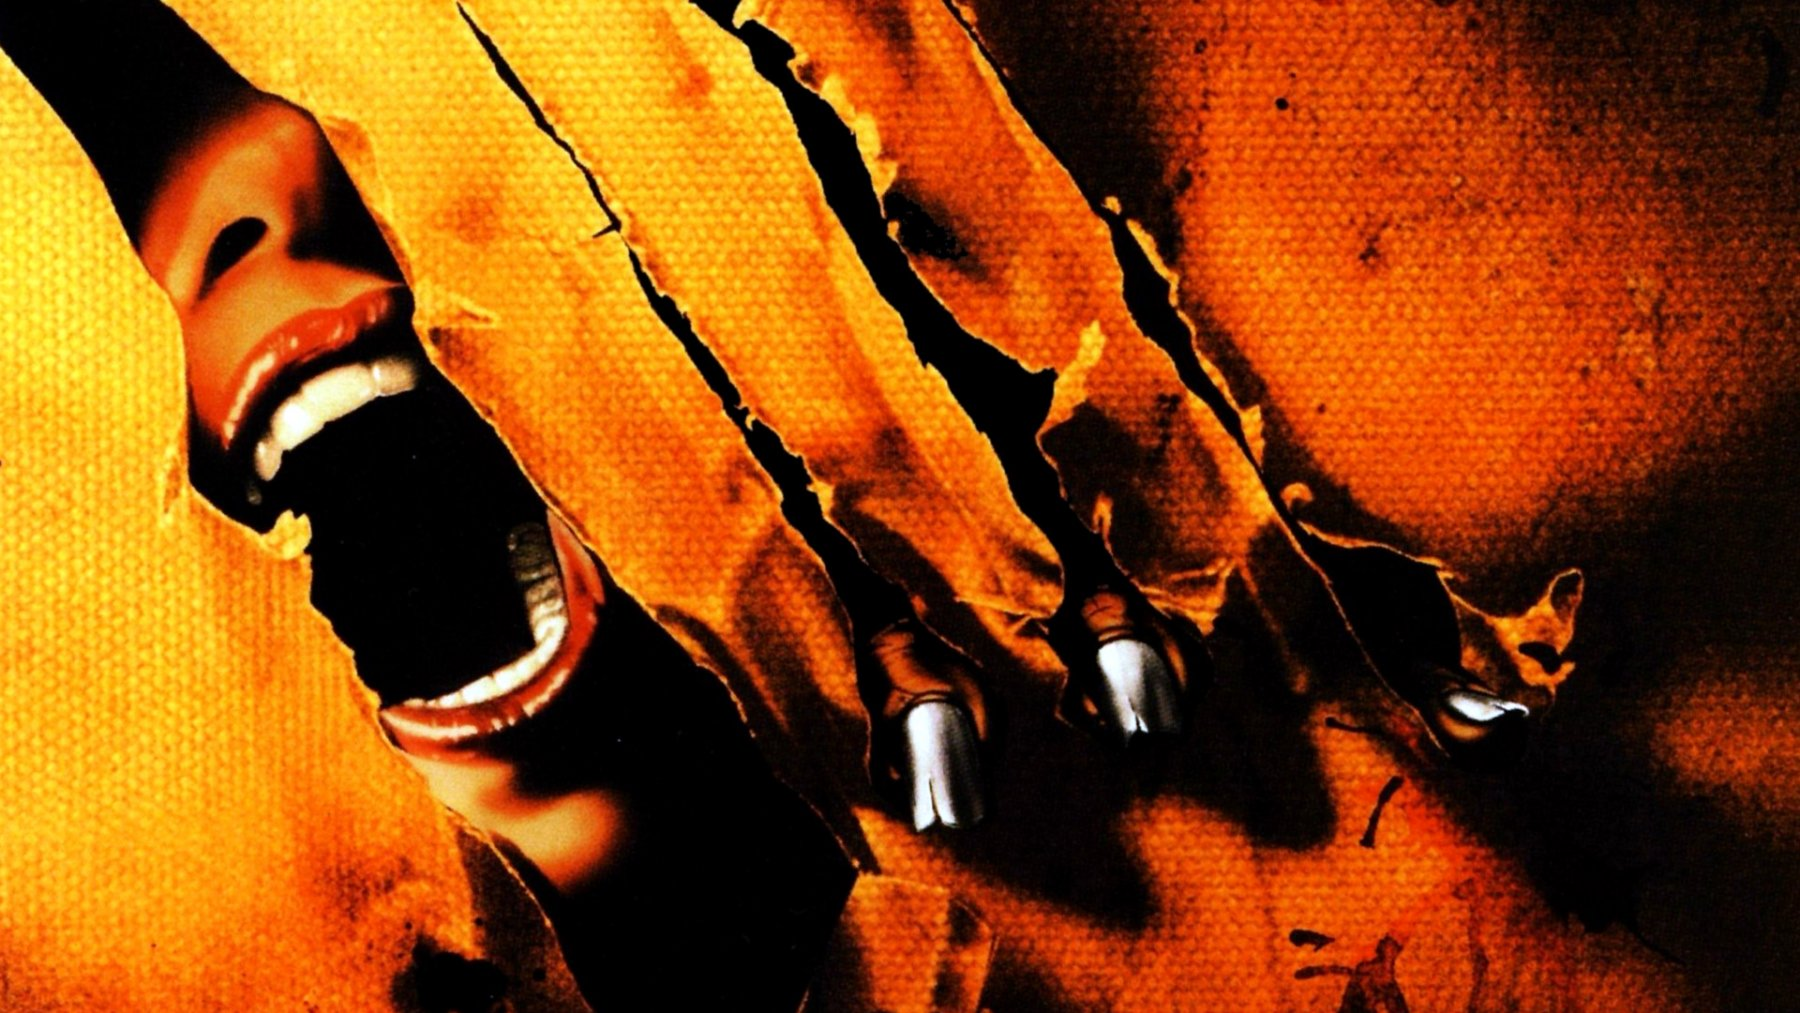 the howling movie wallpapers - photo #23